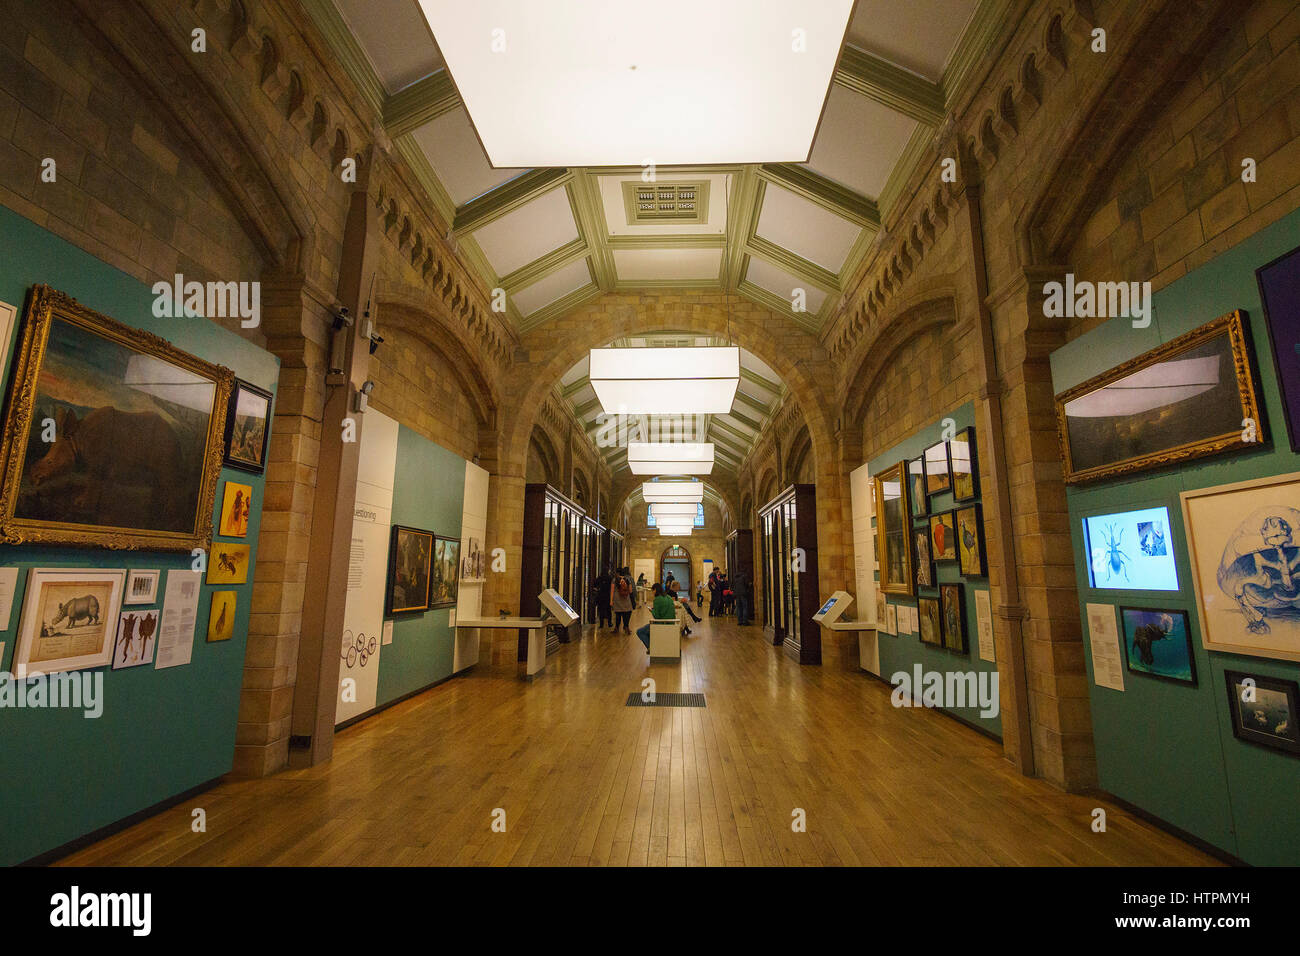 Interior of the Natural History Museum. Established in 1881, the museum houses 80 million items from around the - Stock Image